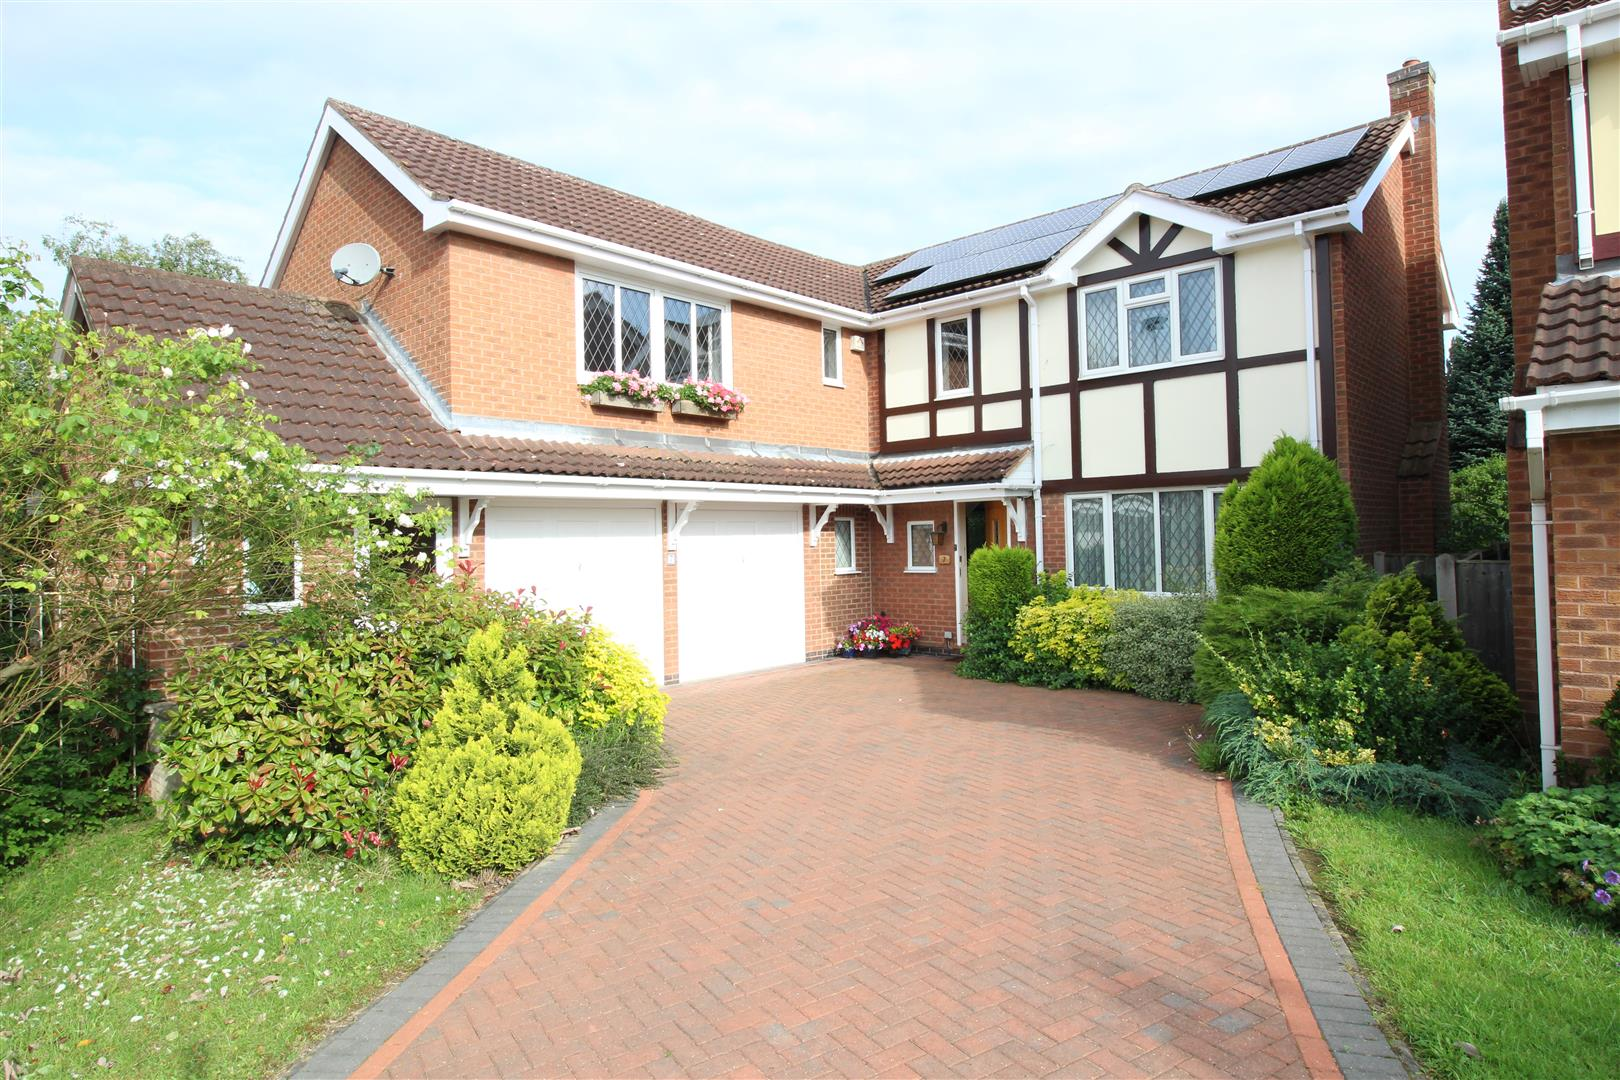 5 Bedrooms House for sale in Edingale Court, Bramcote